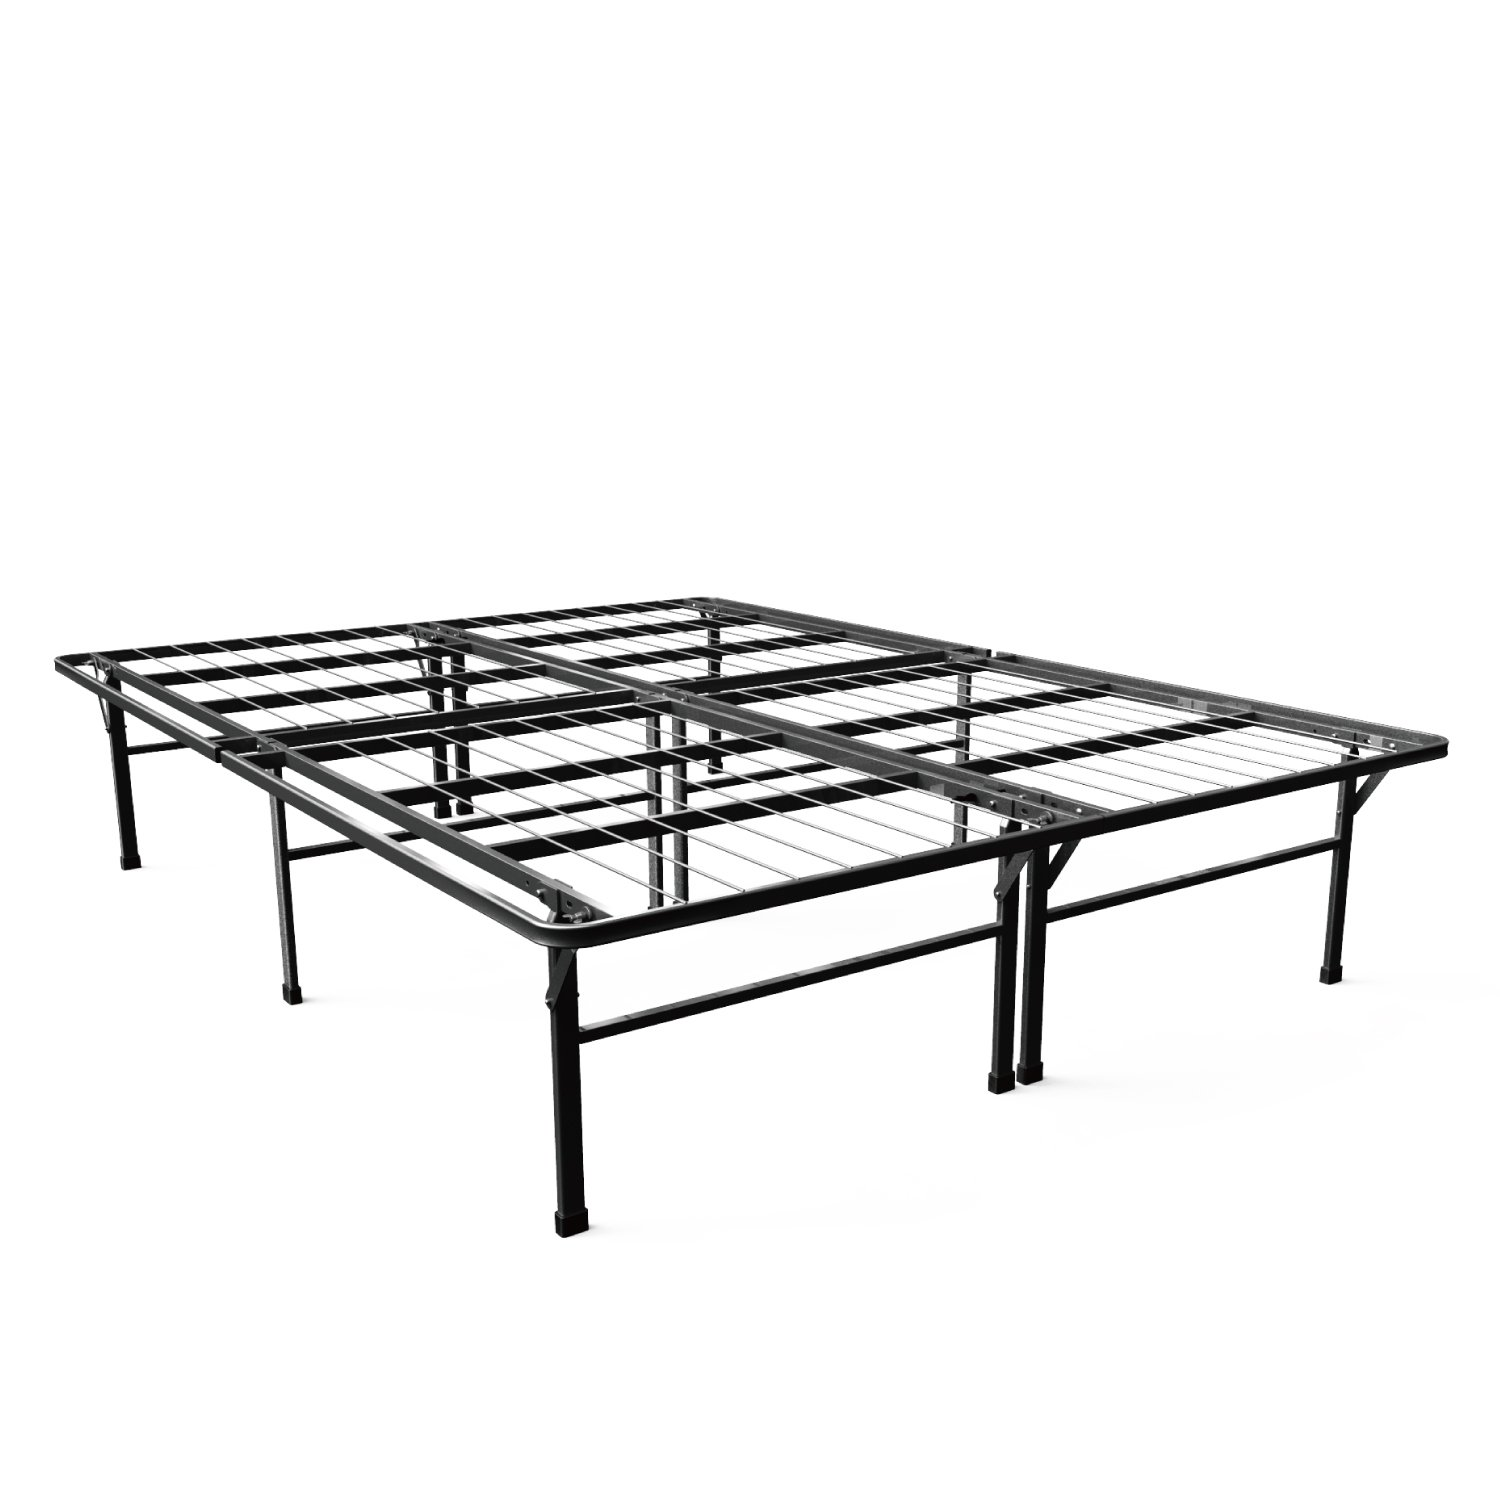 Zinus Gene 16 Inch SmartBase Deluxe Mattress Foundation / 2 Extra Inches high for Under-bed Storage / Platform Bed Frame / Box Spring Replacement / Strong, Sturdy / Quiet Noise-Free, Queen by Zinus